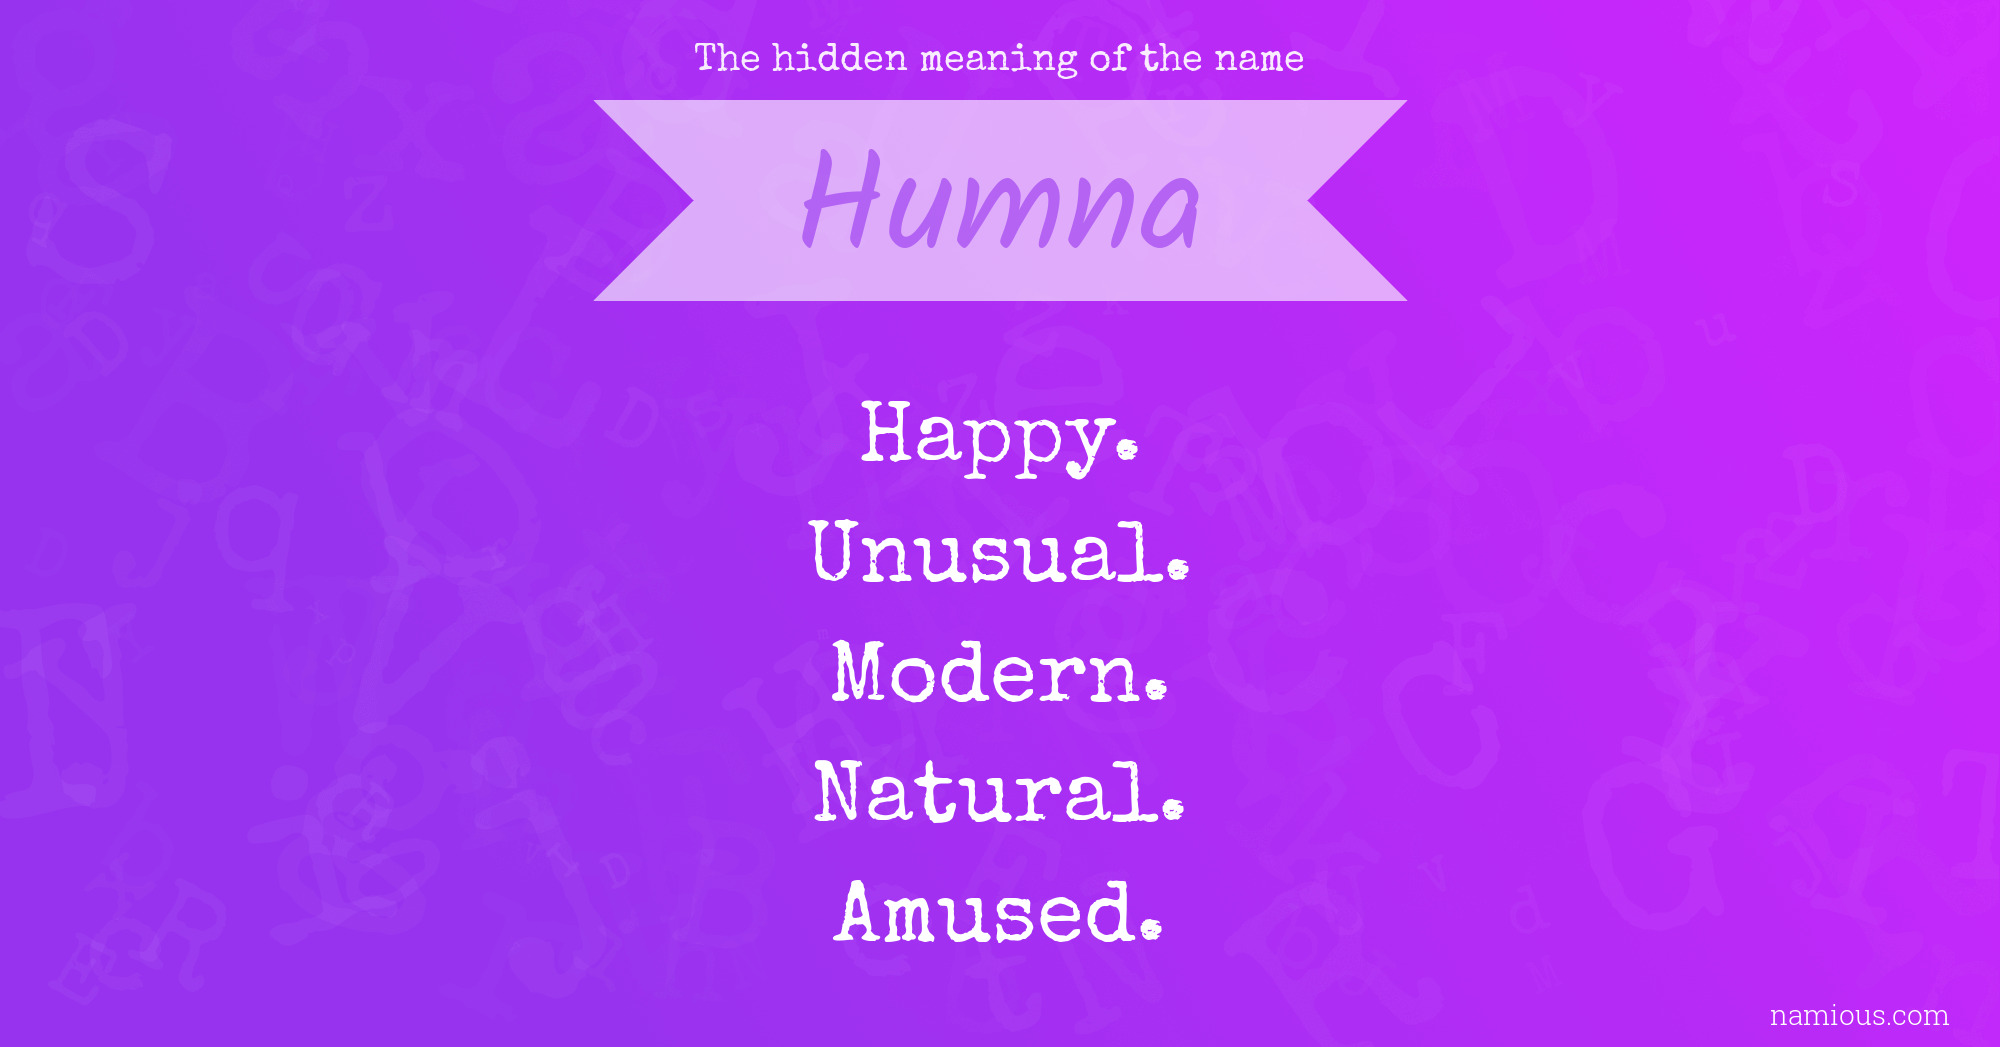 The hidden meaning of the name Humna | Namious